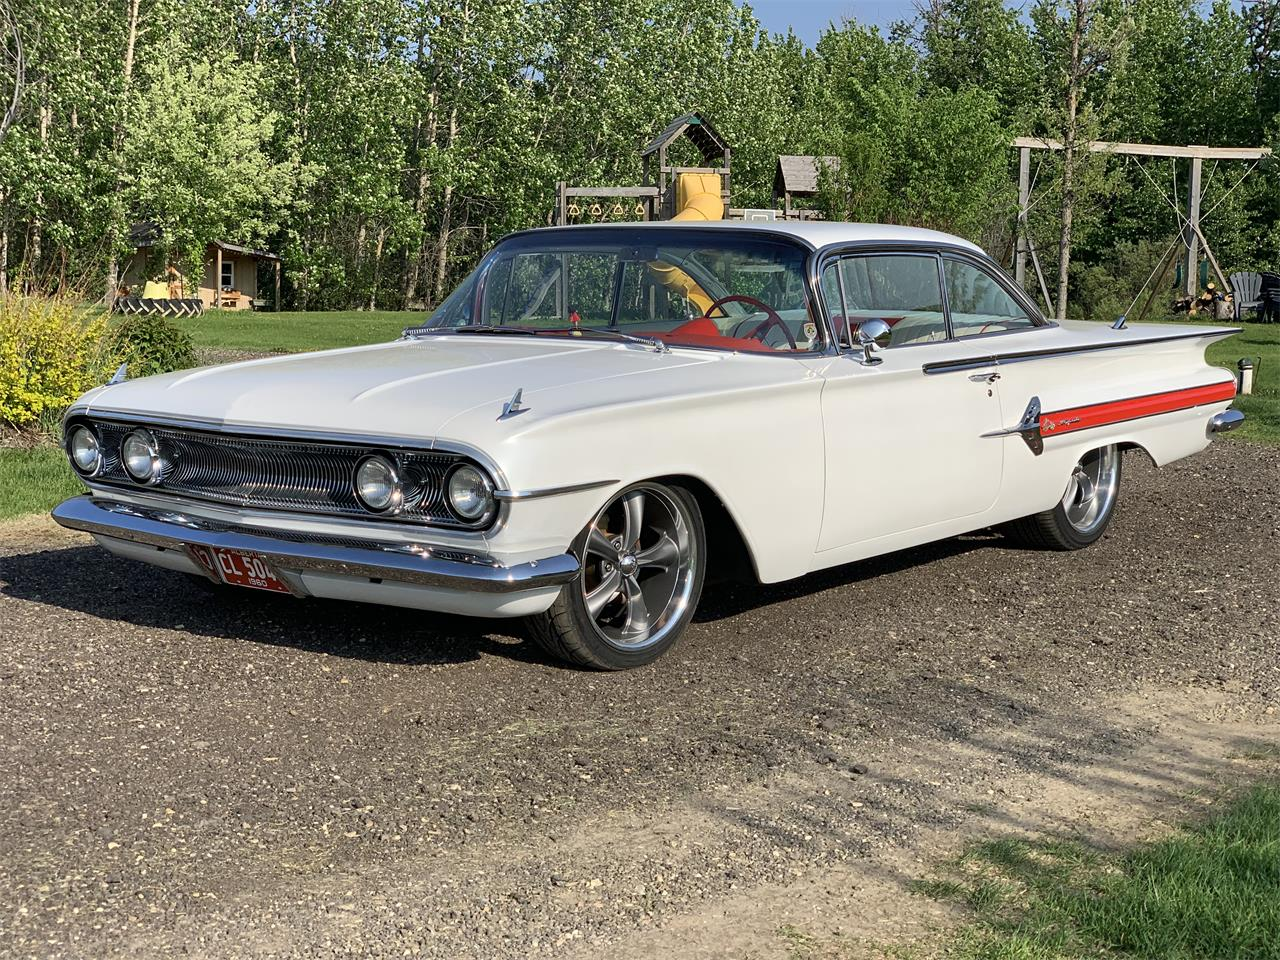 Large Picture of '60 Chevrolet Impala located in Alberta - $47,000.00 Offered by a Private Seller - QOLH